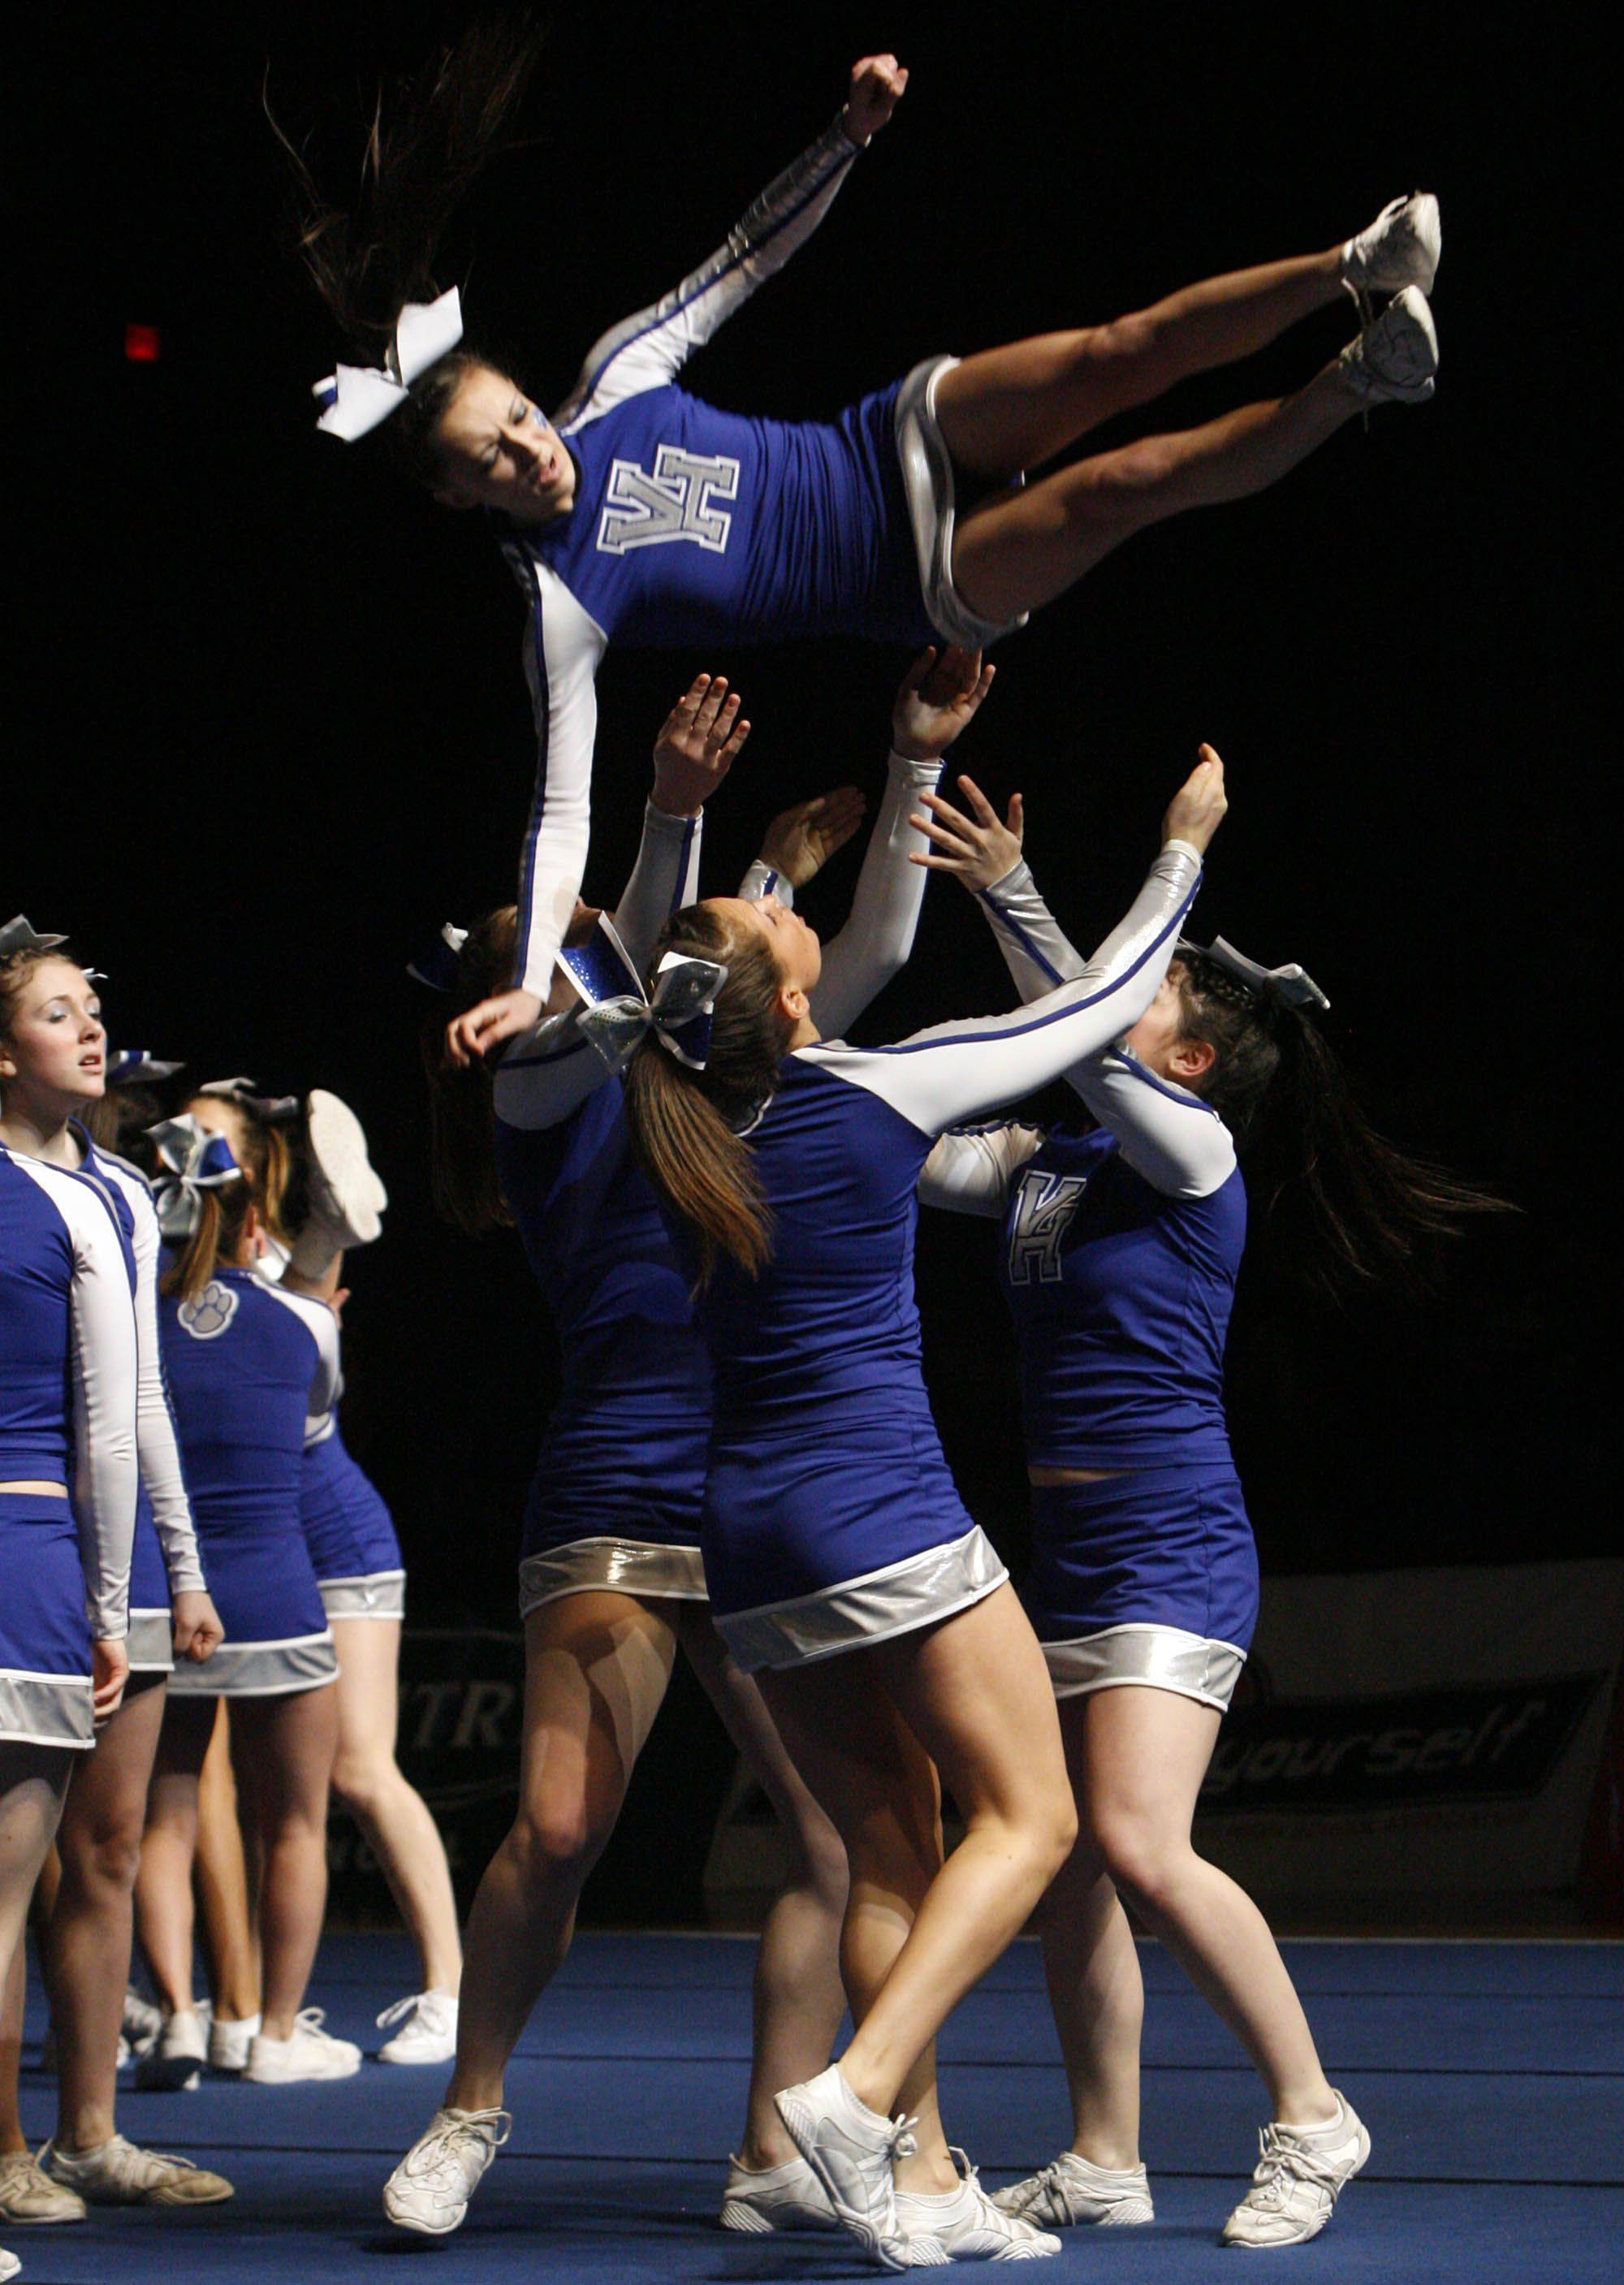 Vernon Hills compete in the medium team category at IHSA cheerleading state finals at U.S. Cellular Coliseum in Bloomington on Saturday, February 4th.